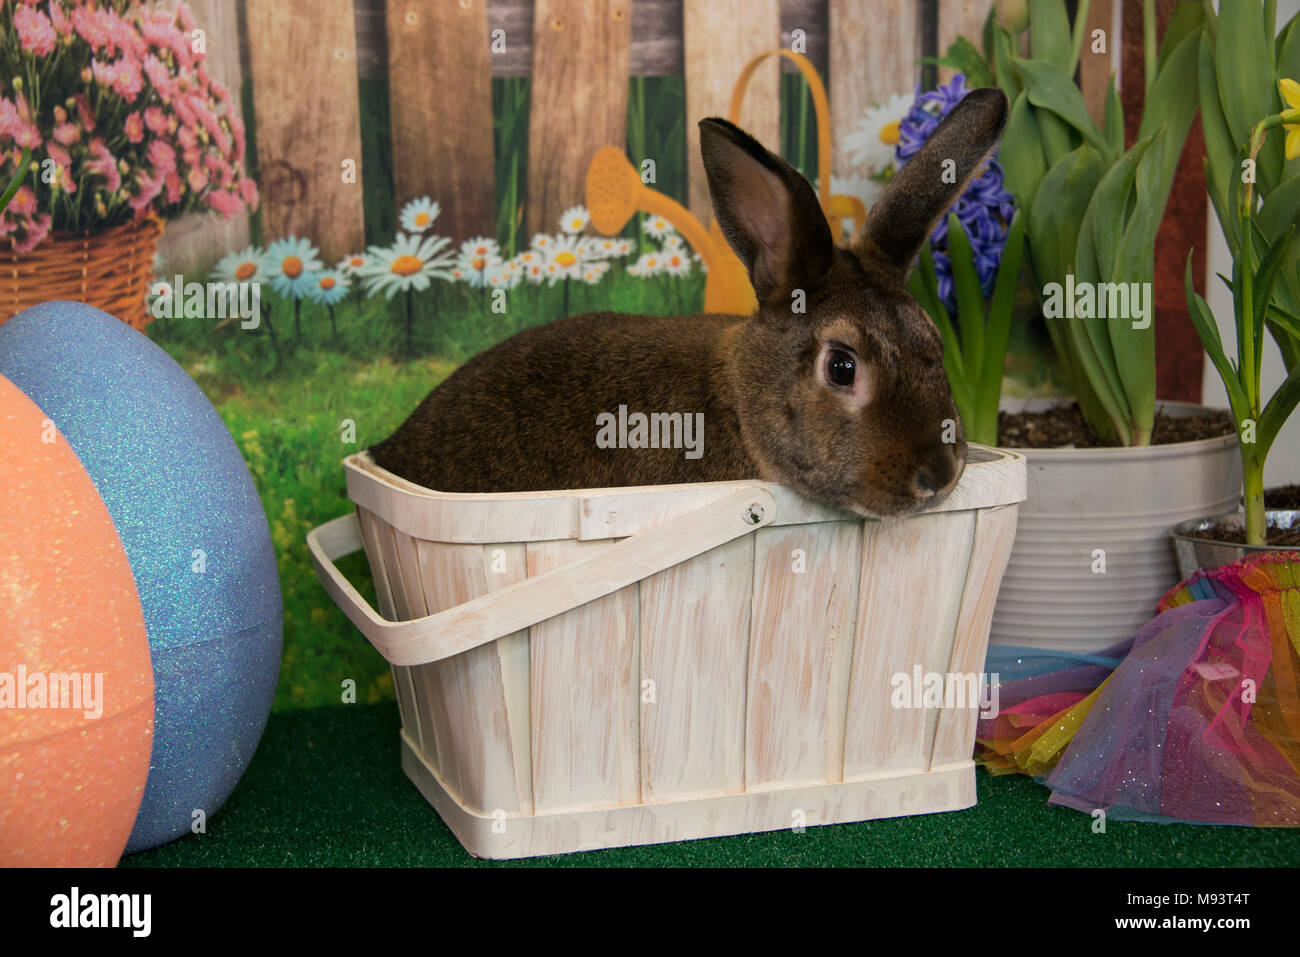 Easter Bunny Rabbit In Basket With Colored Eggs And Blooming Spring